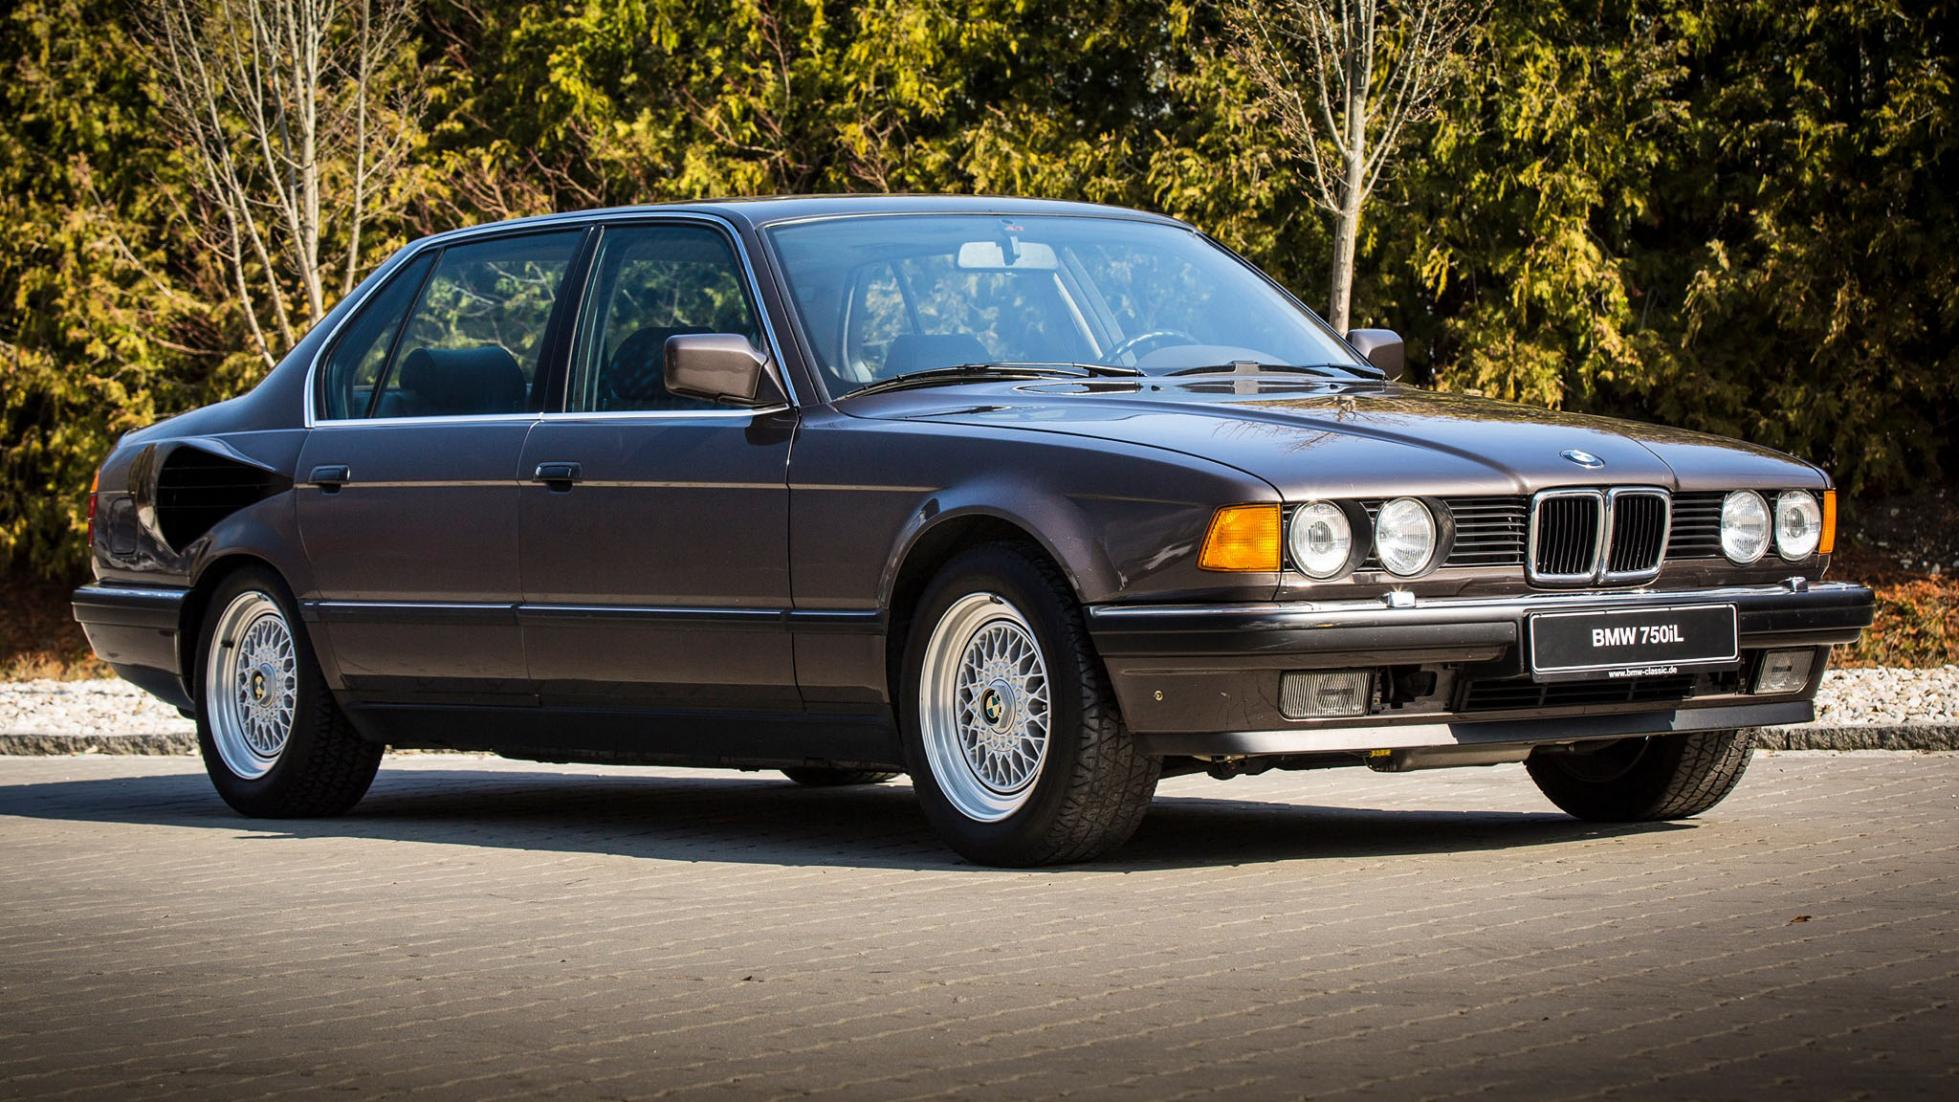 This amazing one-off BMW 7 Series has a V16 engine